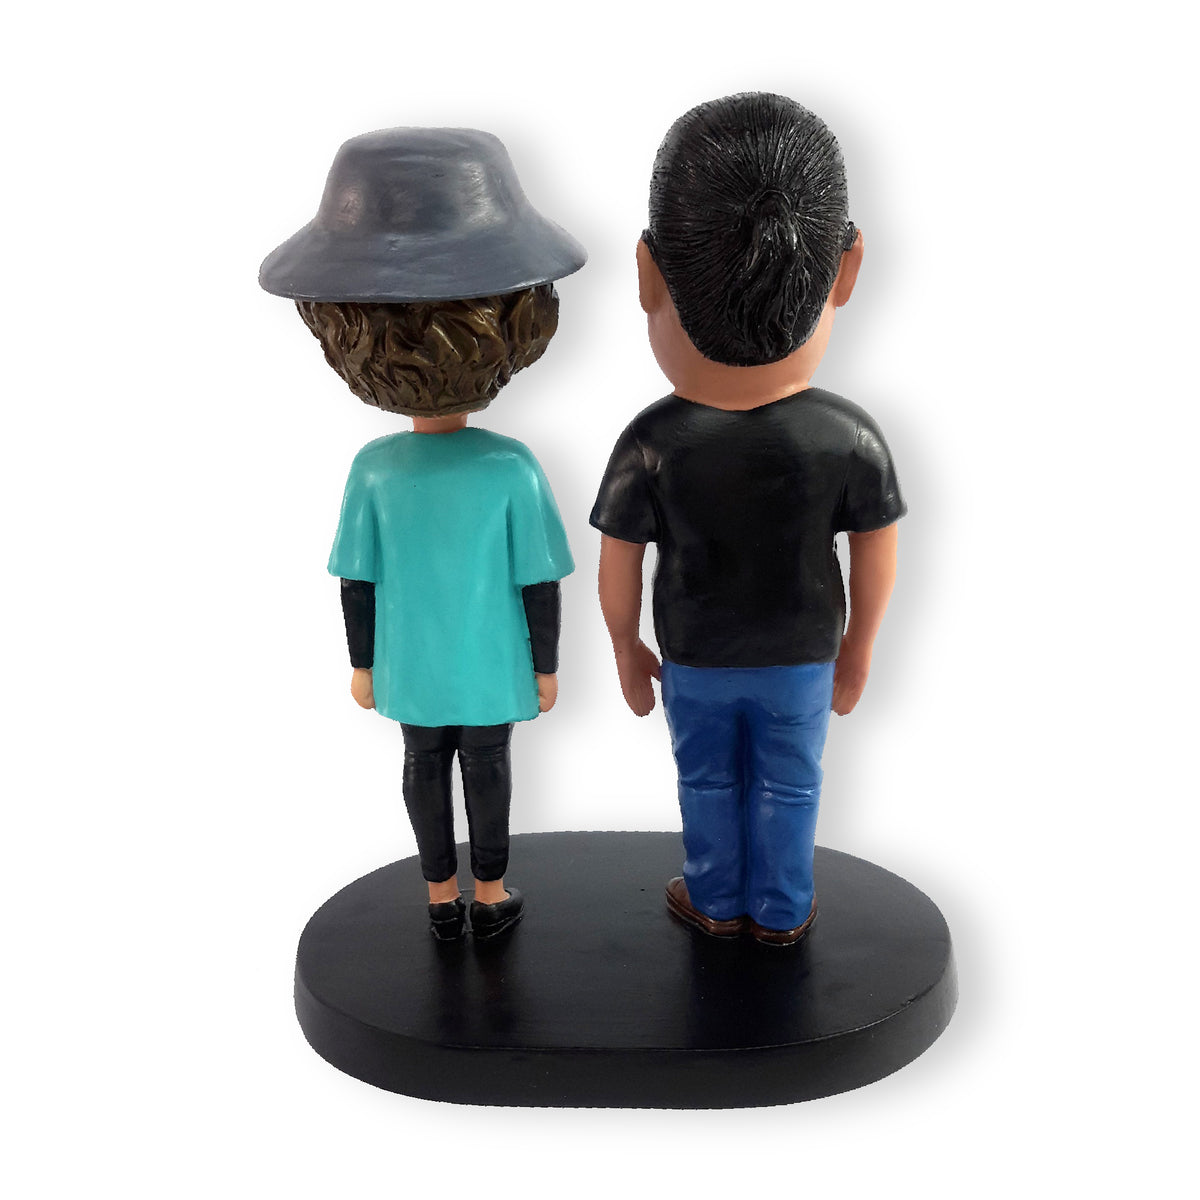 Big Ed and Norma Bobbleheads